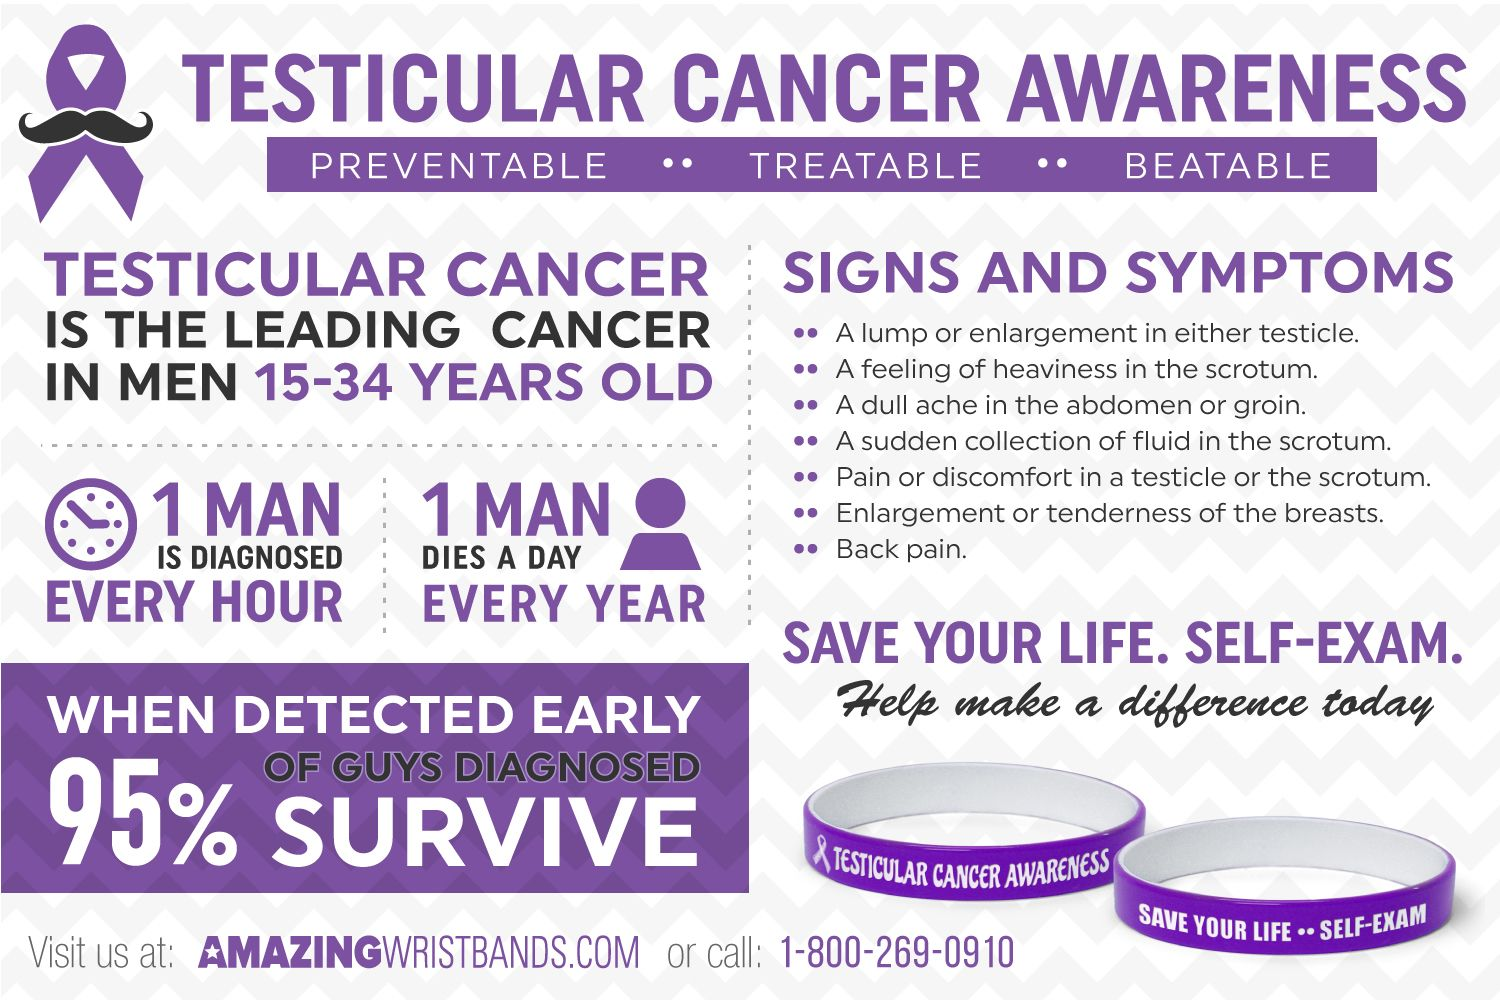 awareness infographic health on cancer s testicular men best bracelet pinterest images